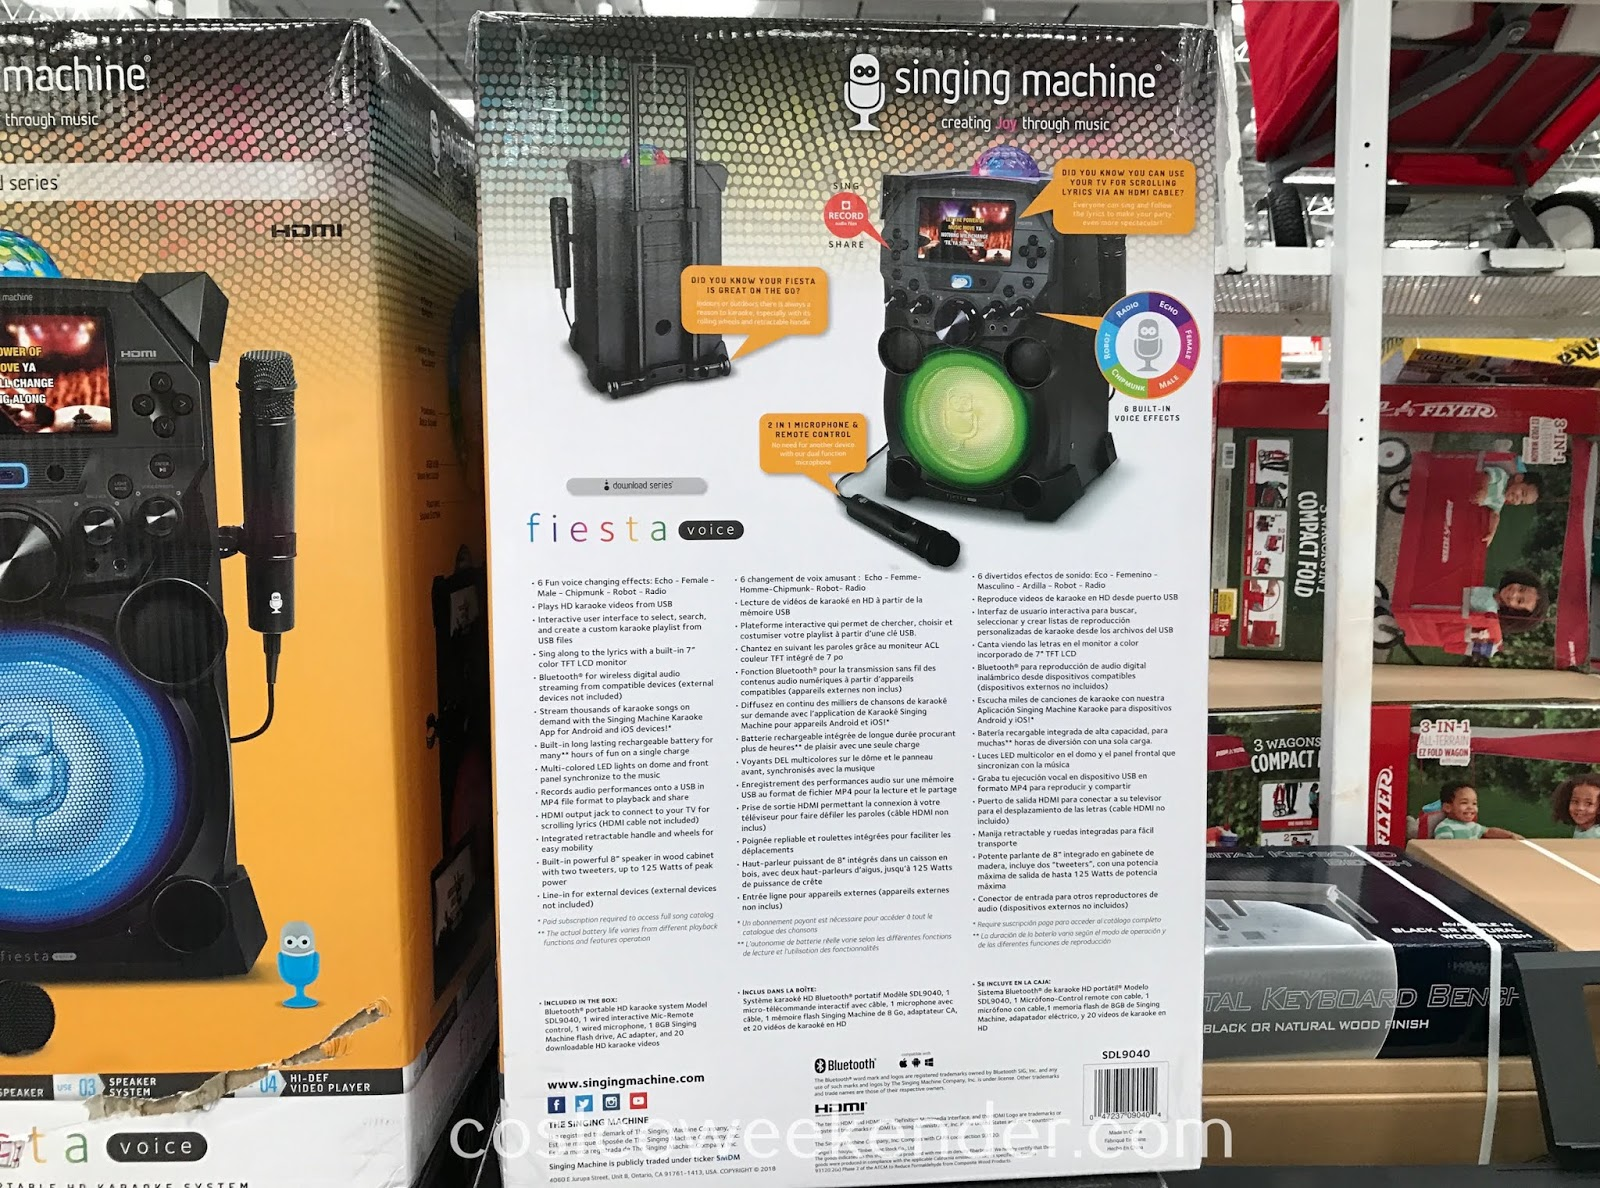 Be the next Taylor Swift with the Singing Machine Fiesta Voice Portable Karaoke System (model SDL9040)